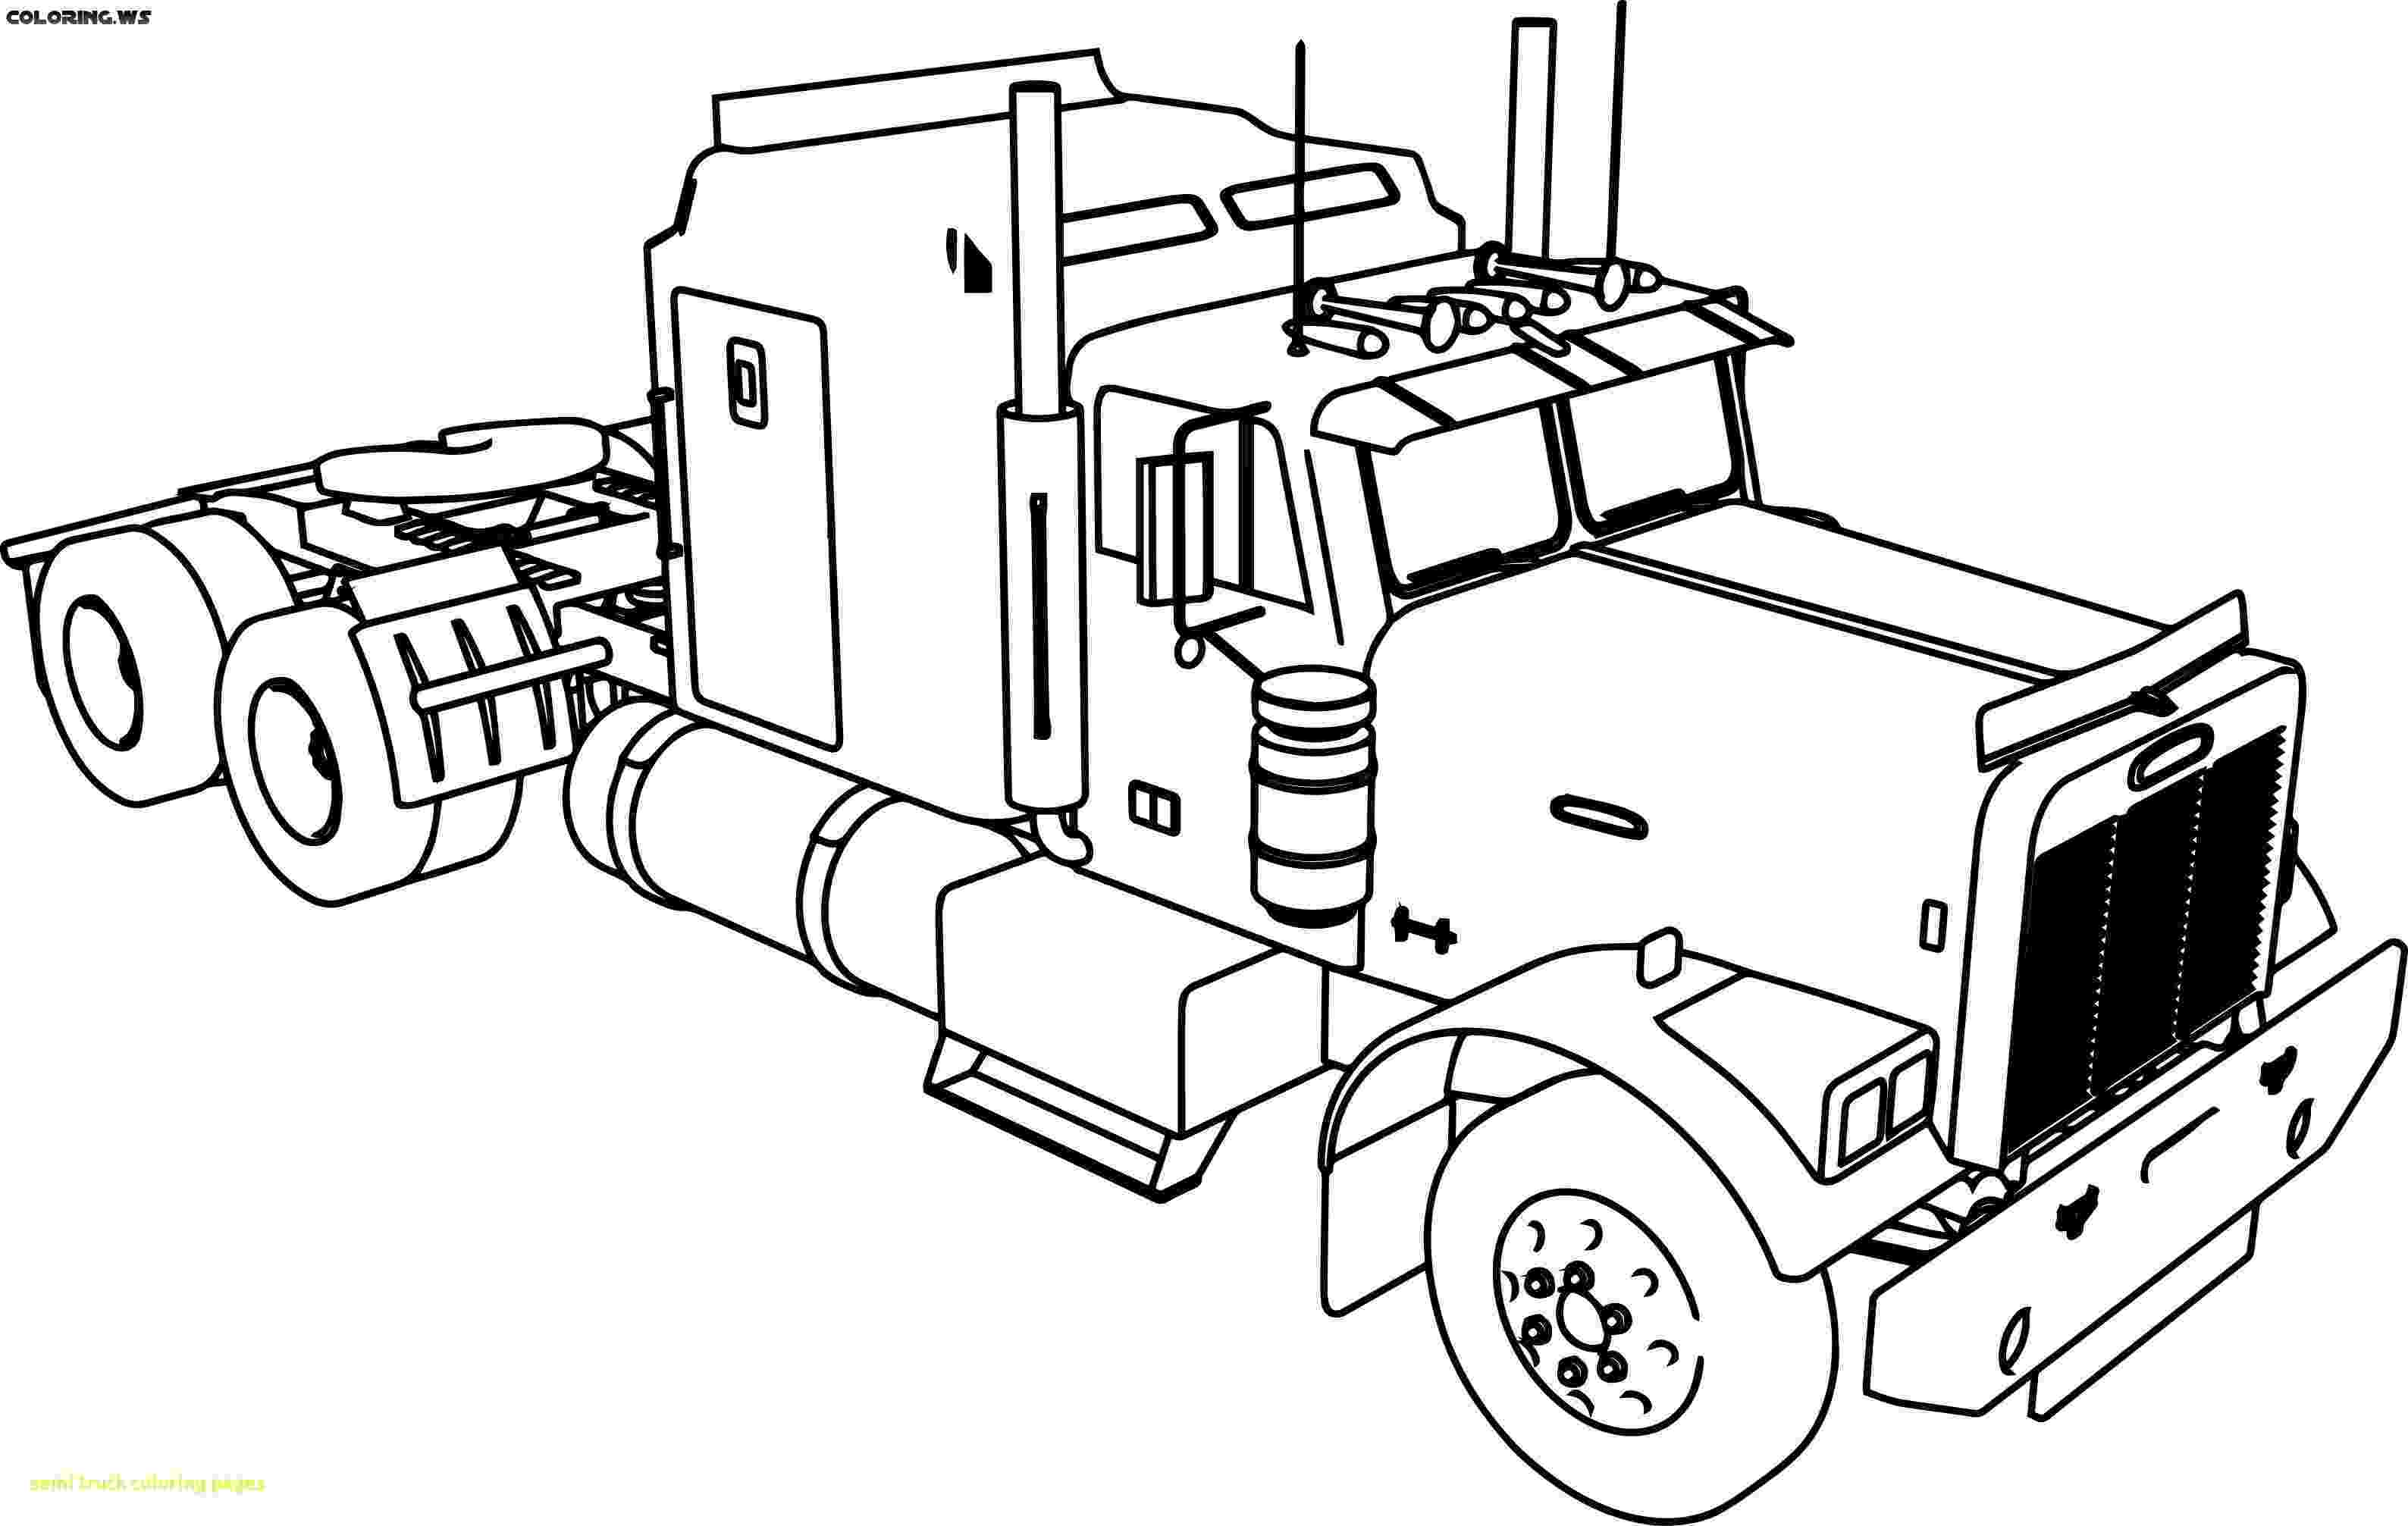 coloring pages of cars and trucks free truck coloring pages for adults truck coloring cars pages of trucks coloring and